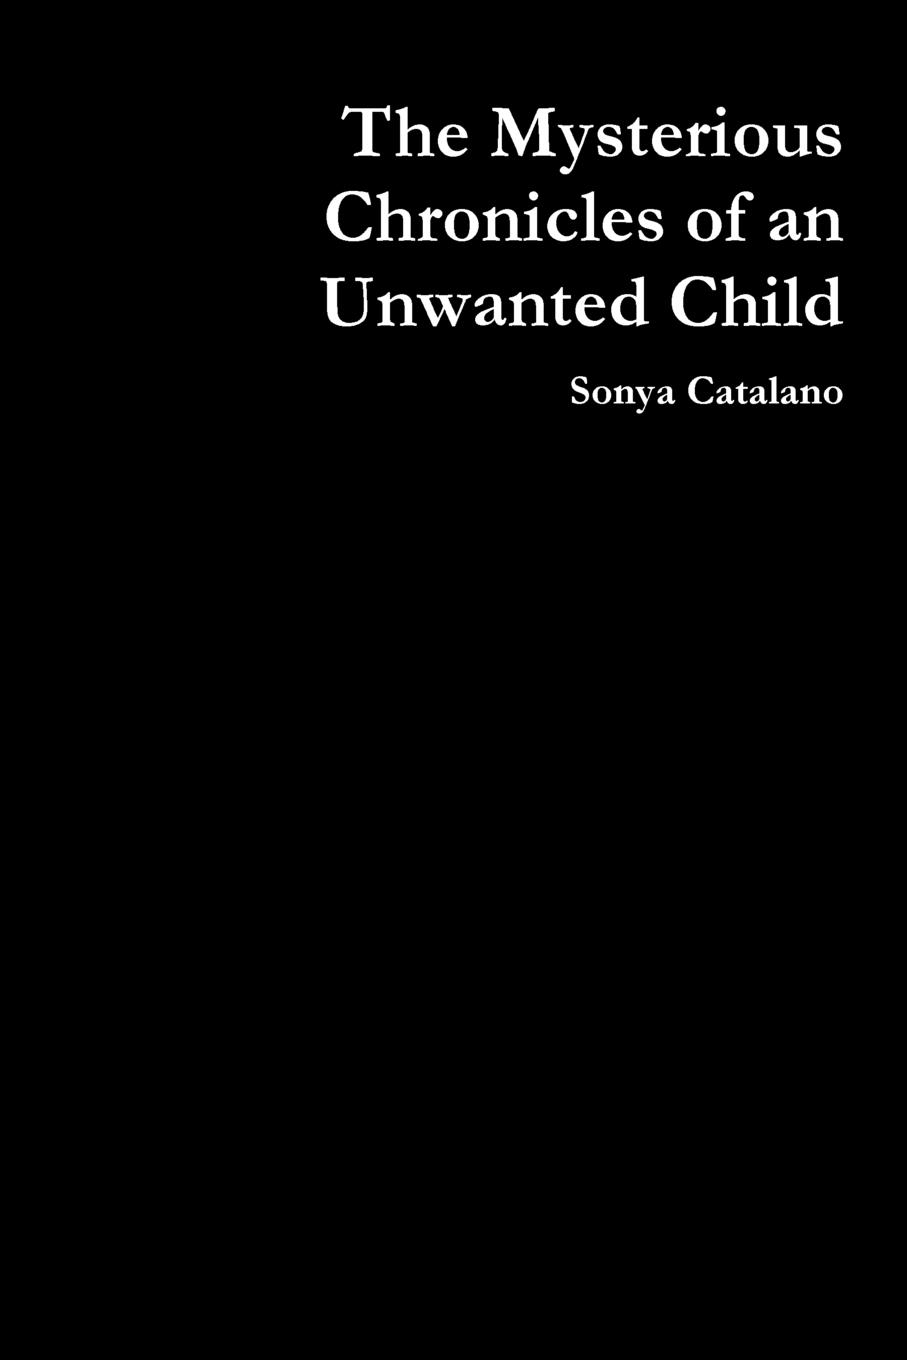 Sonya Catalano The Mysterious Chronicles of an Unwanted Child sonya catalano the mysterious chronicles of an unwanted child